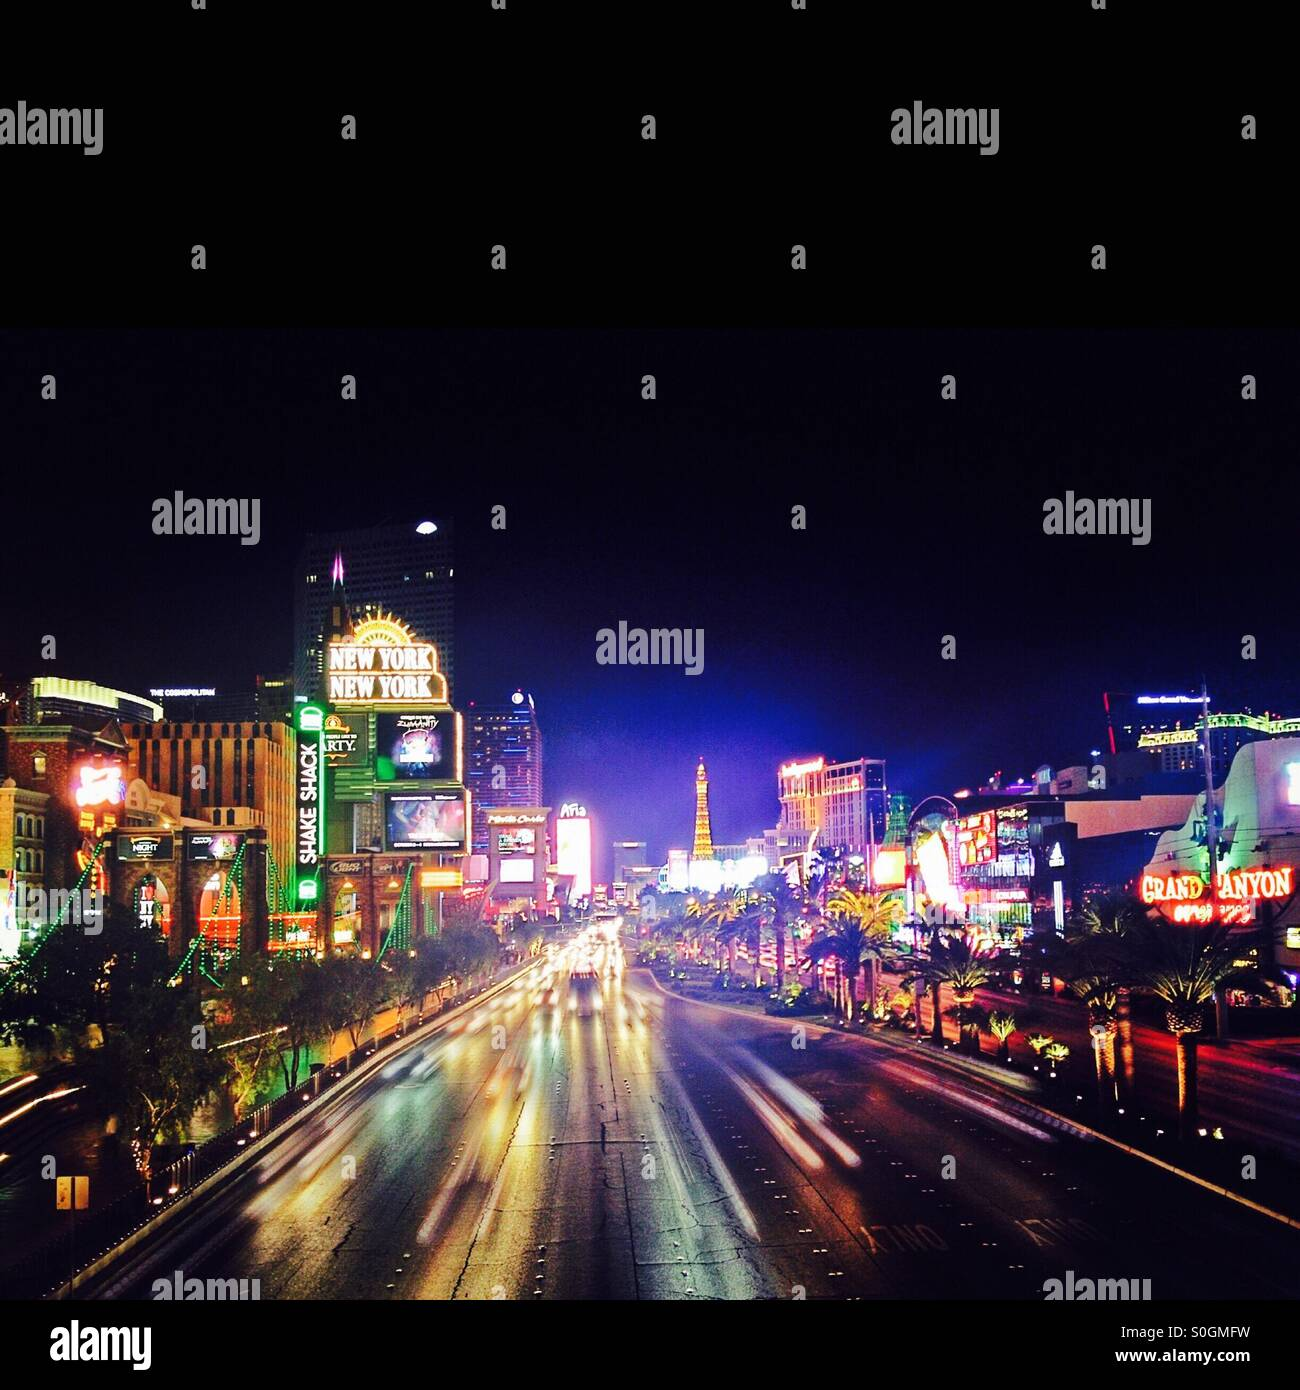 Las Vegas never sleeps - Stock Image